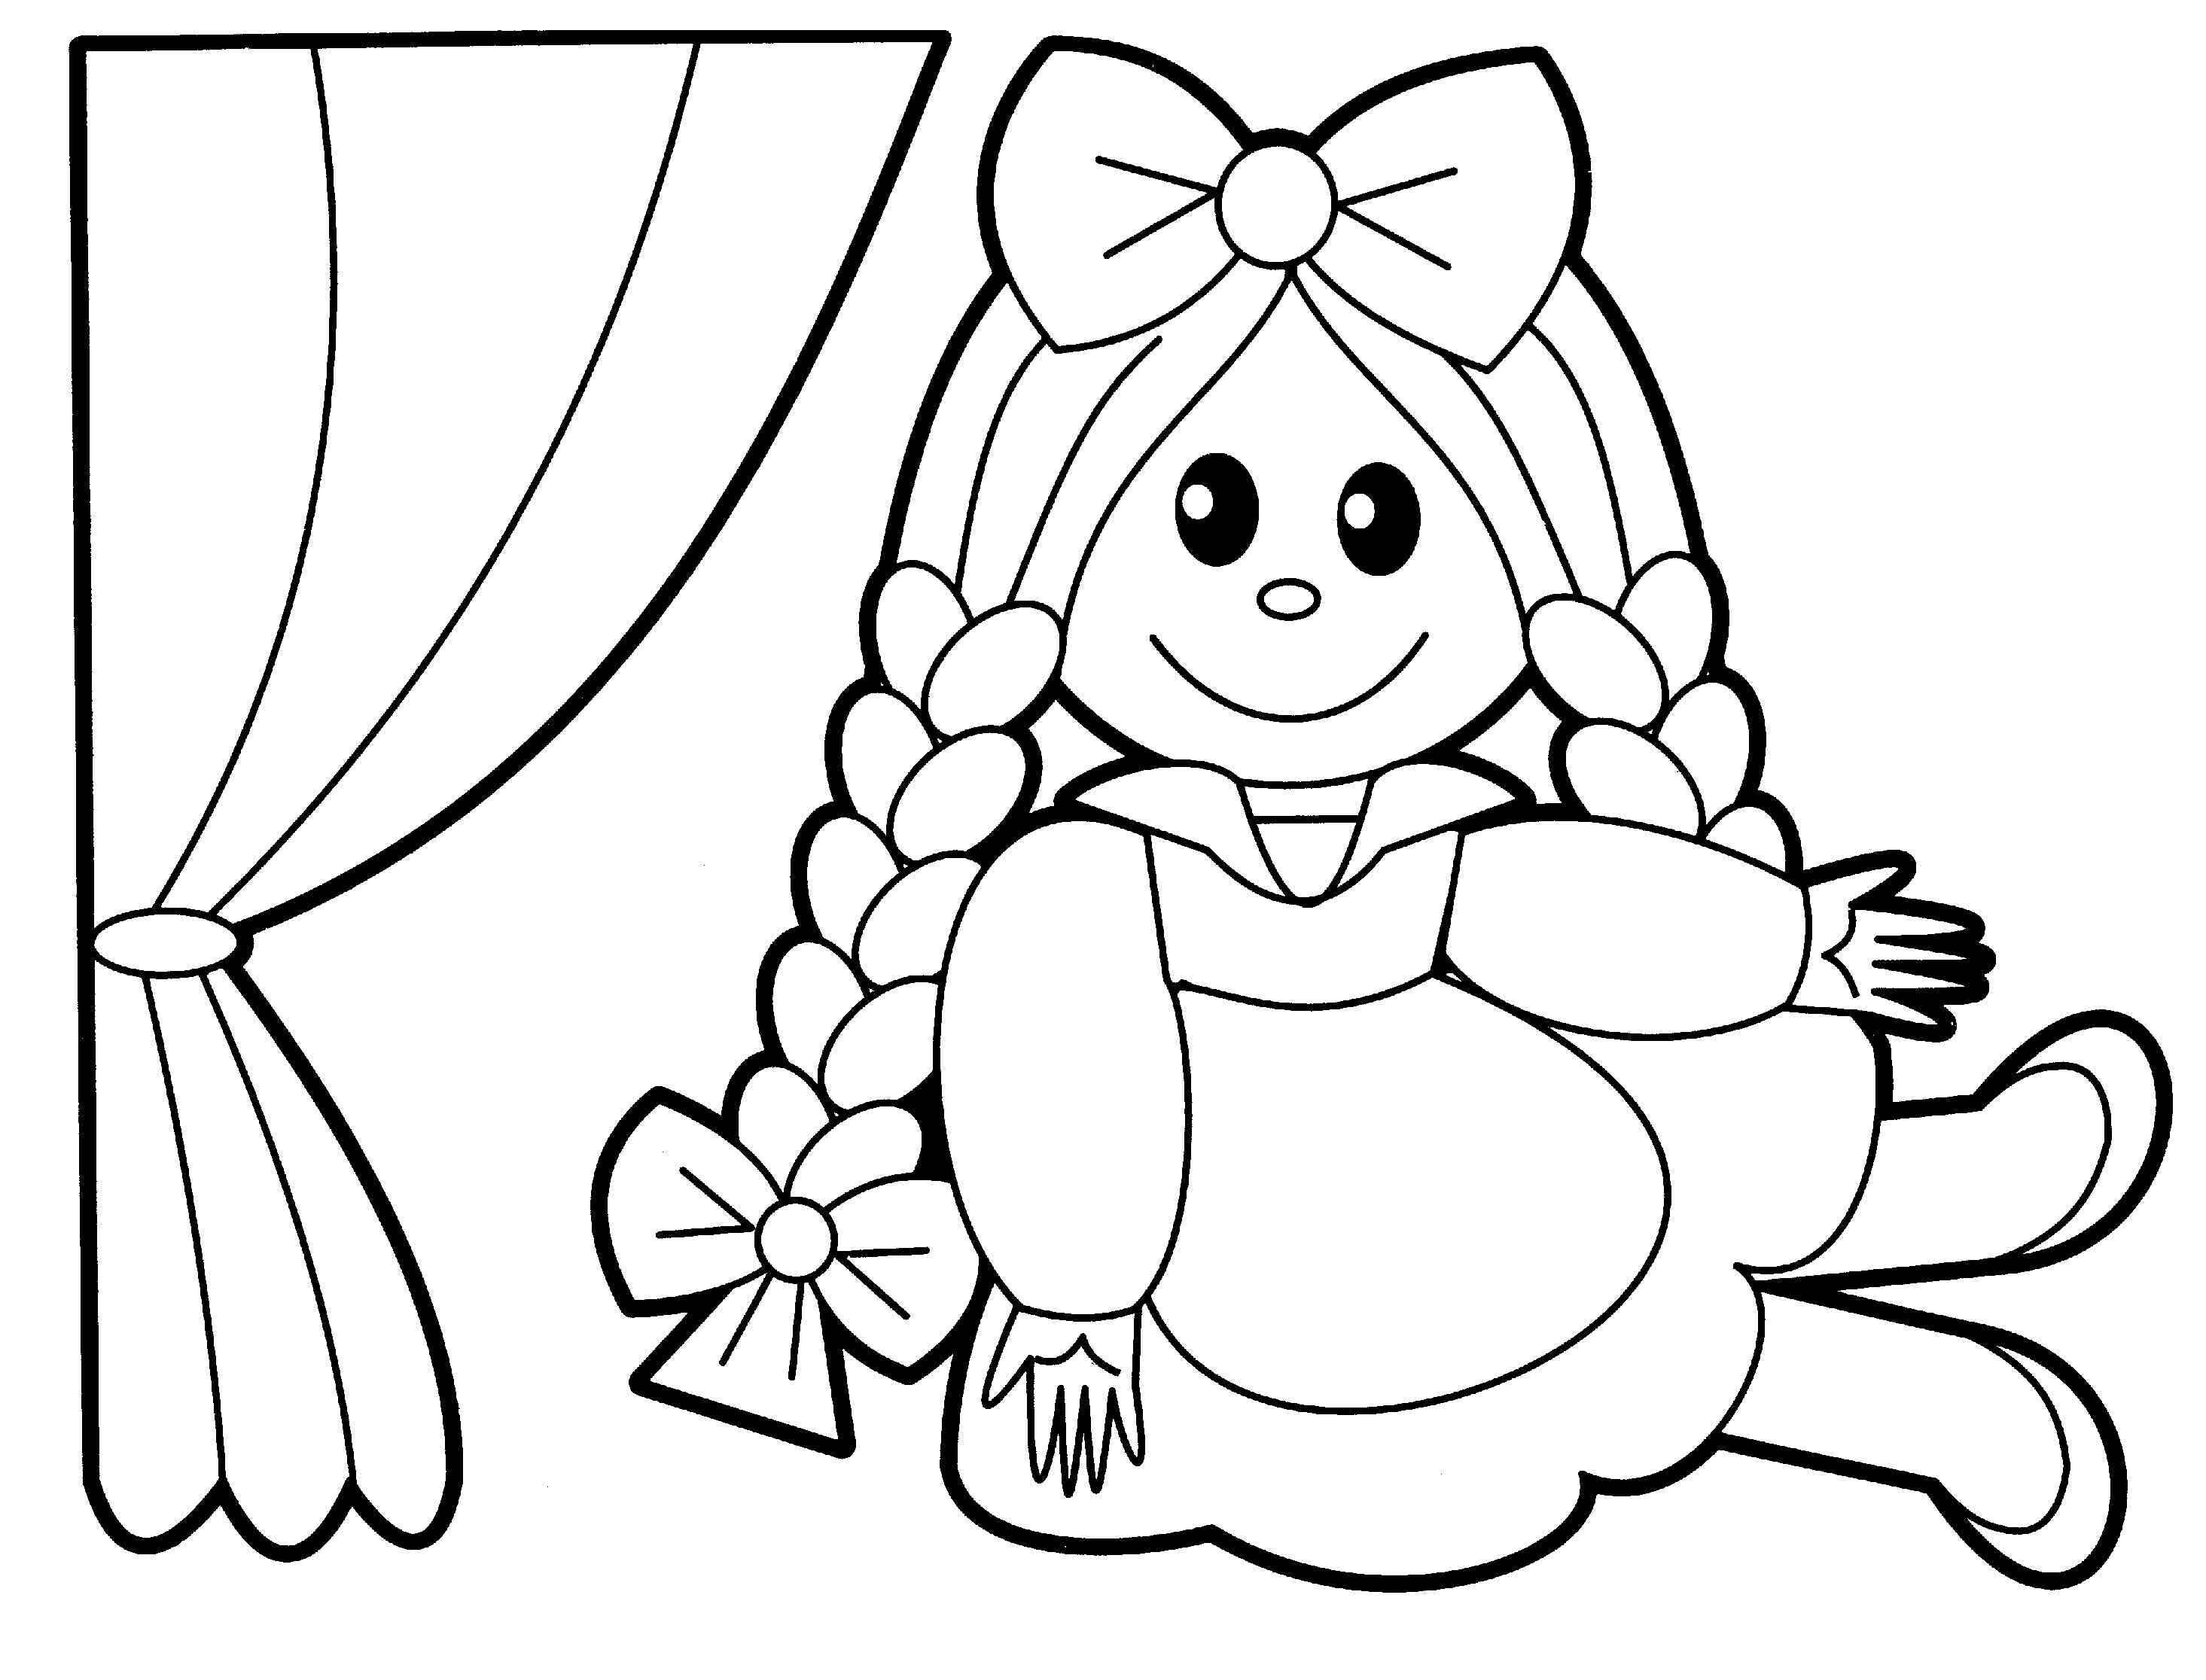 dolls colouring pages toys coloring pages best coloring pages for kids pages colouring dolls